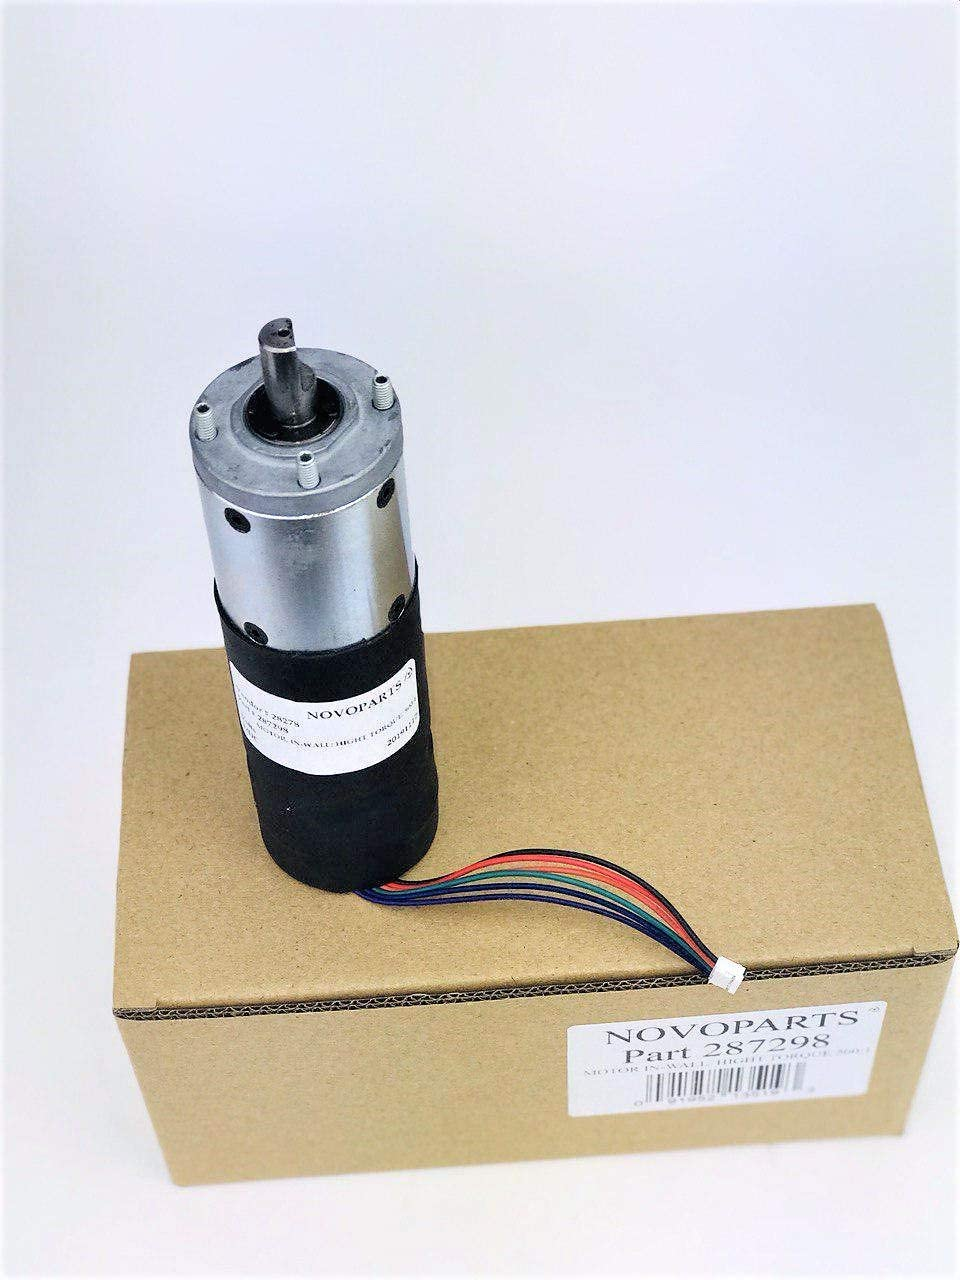 NOVOPARTS 287298 Motor Slide Out 500:1 High Torque in-Wall